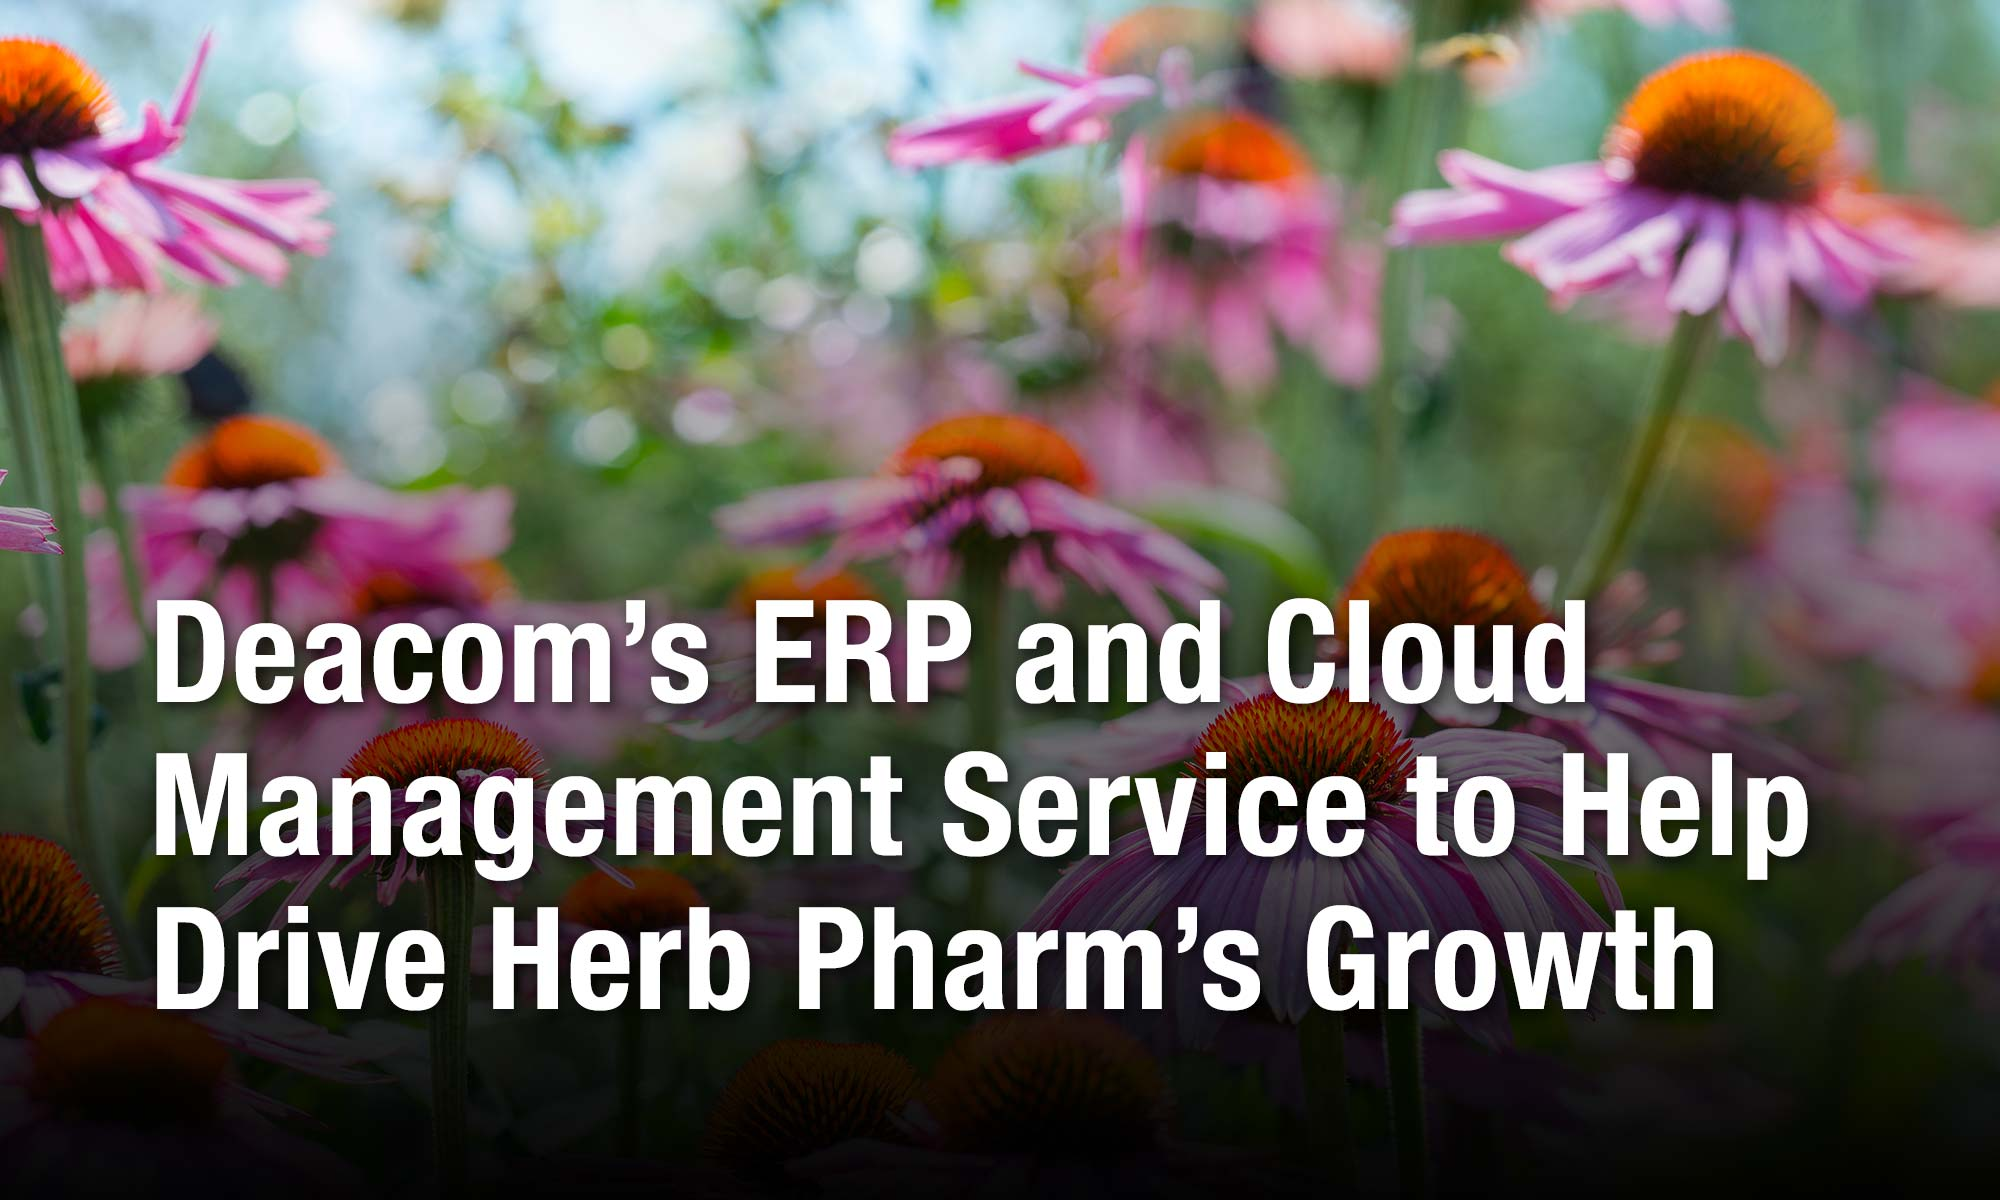 Deacom's ERP and Cloud Management Service to Help Drive Herb Pharm's Growth